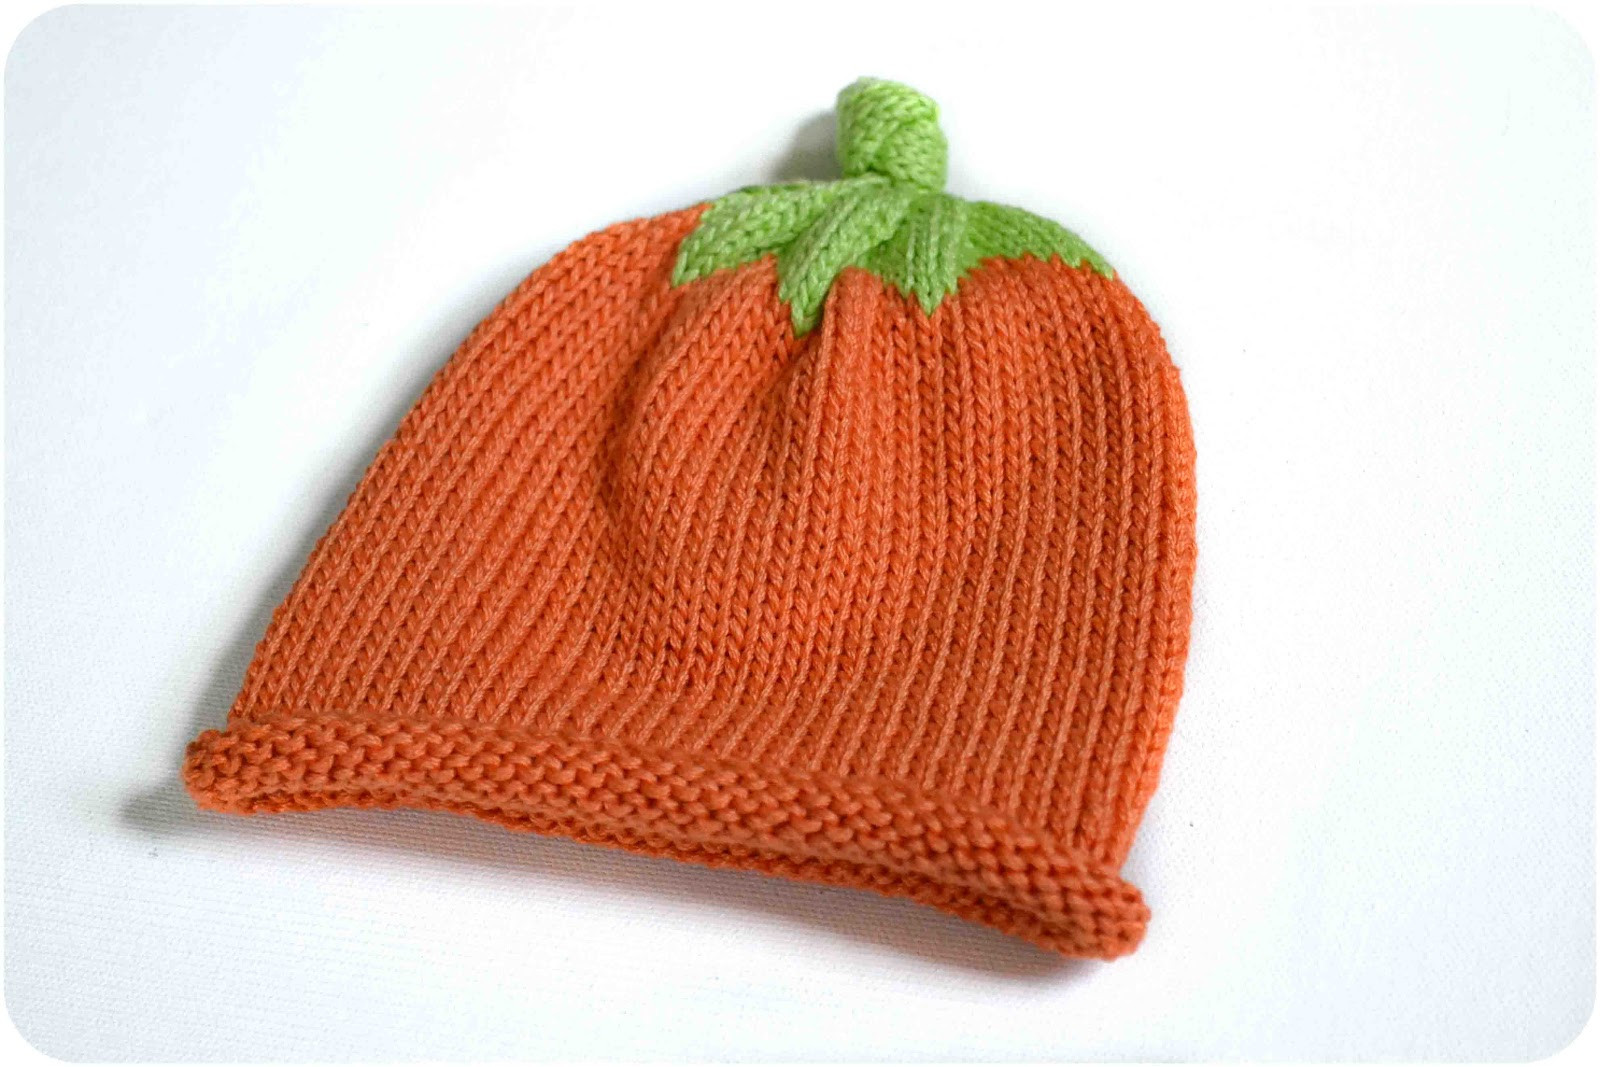 Inspirational Little and Lovely New Pumpkin Baby Hat Pattern On Etsy Knitted Pumpkin Hat Of Marvelous 40 Ideas Knitted Pumpkin Hat